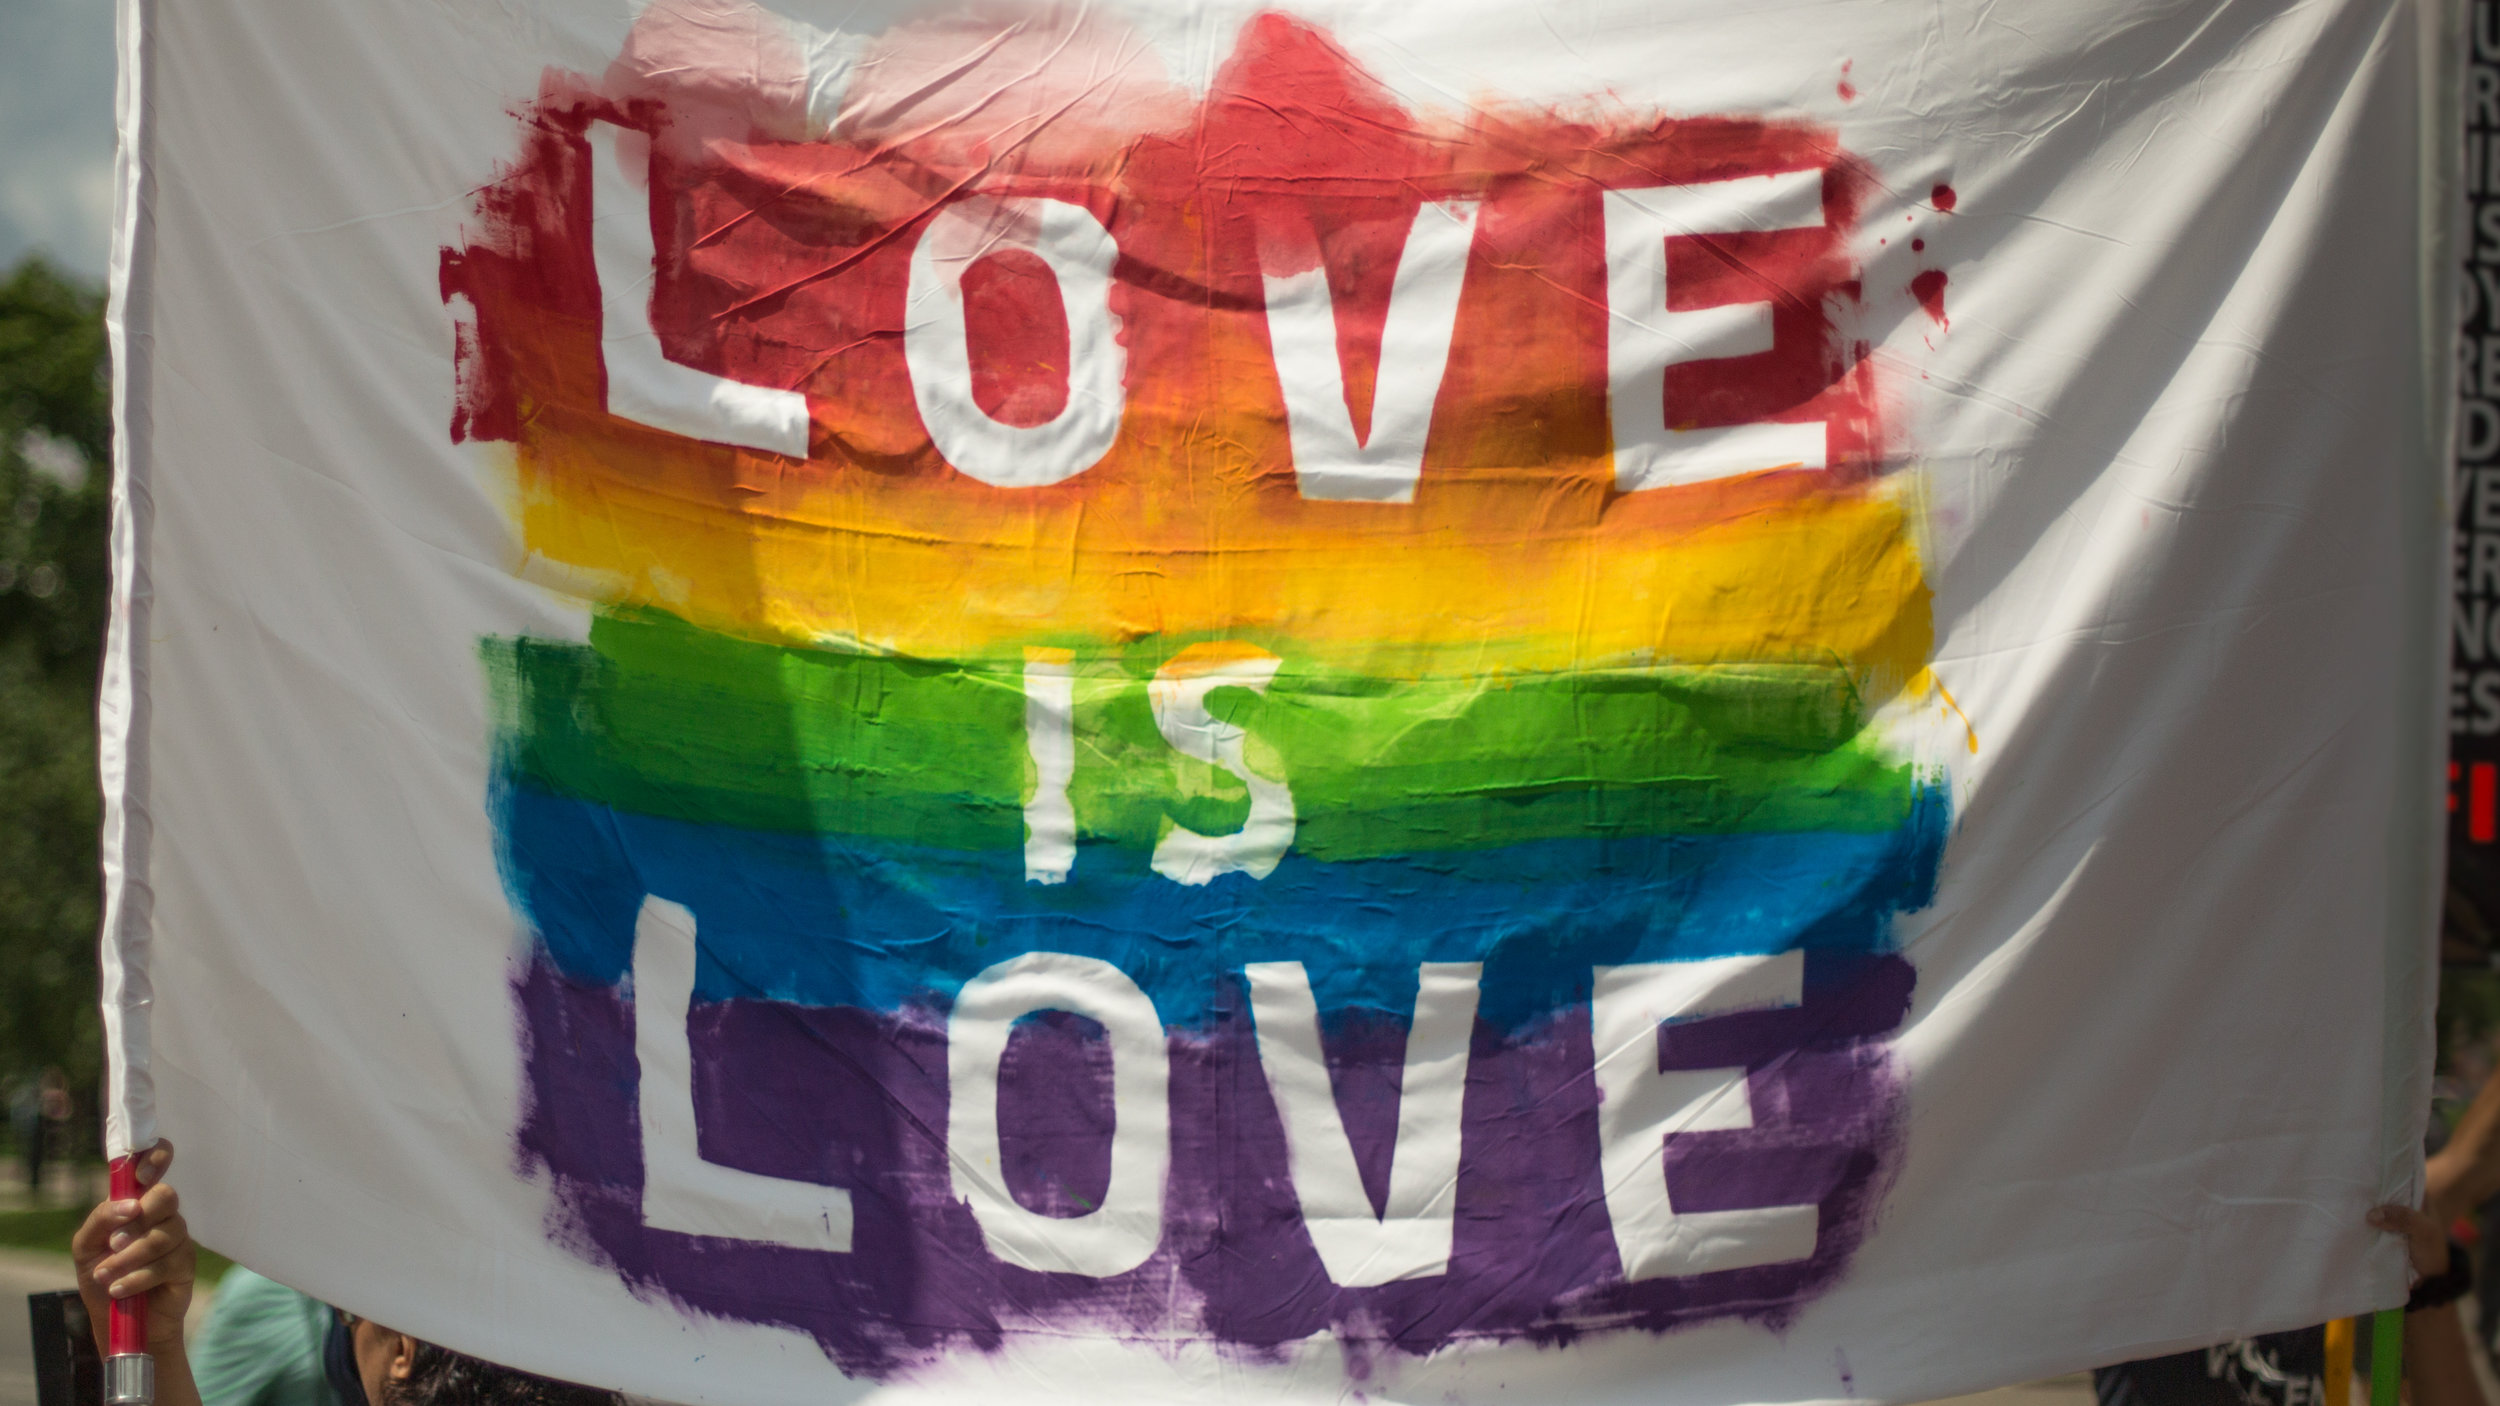 judgment free zone, safe space, LGBTQ LGBT counselor charlotte nc 28210